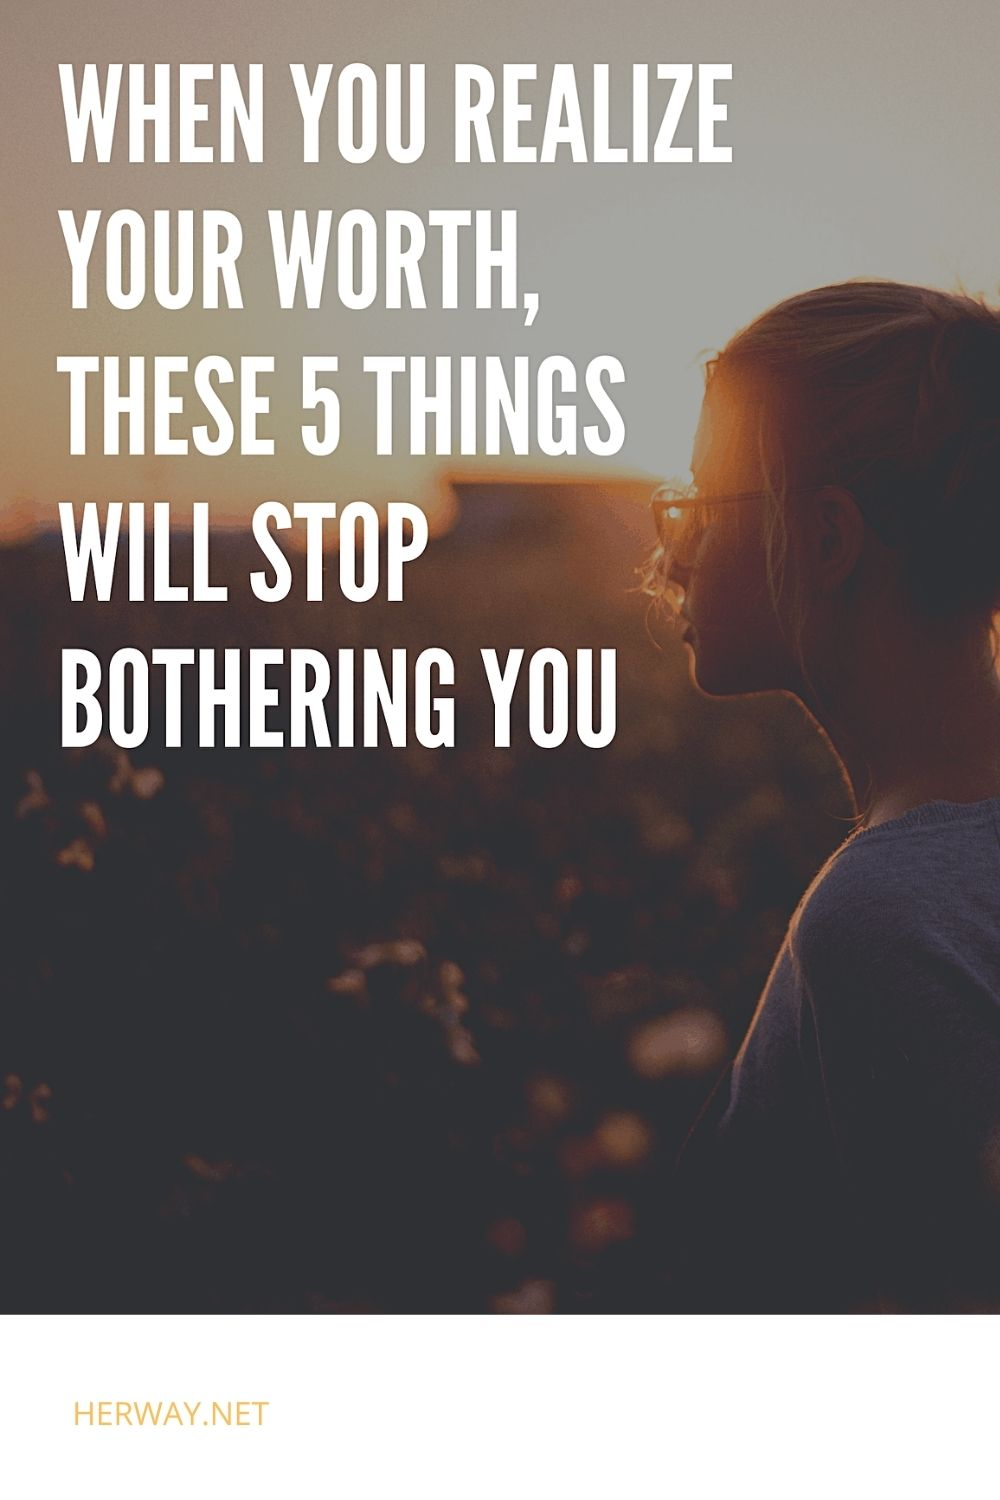 When You Realize Your Worth, These 5 Things Will Stop Bothering You